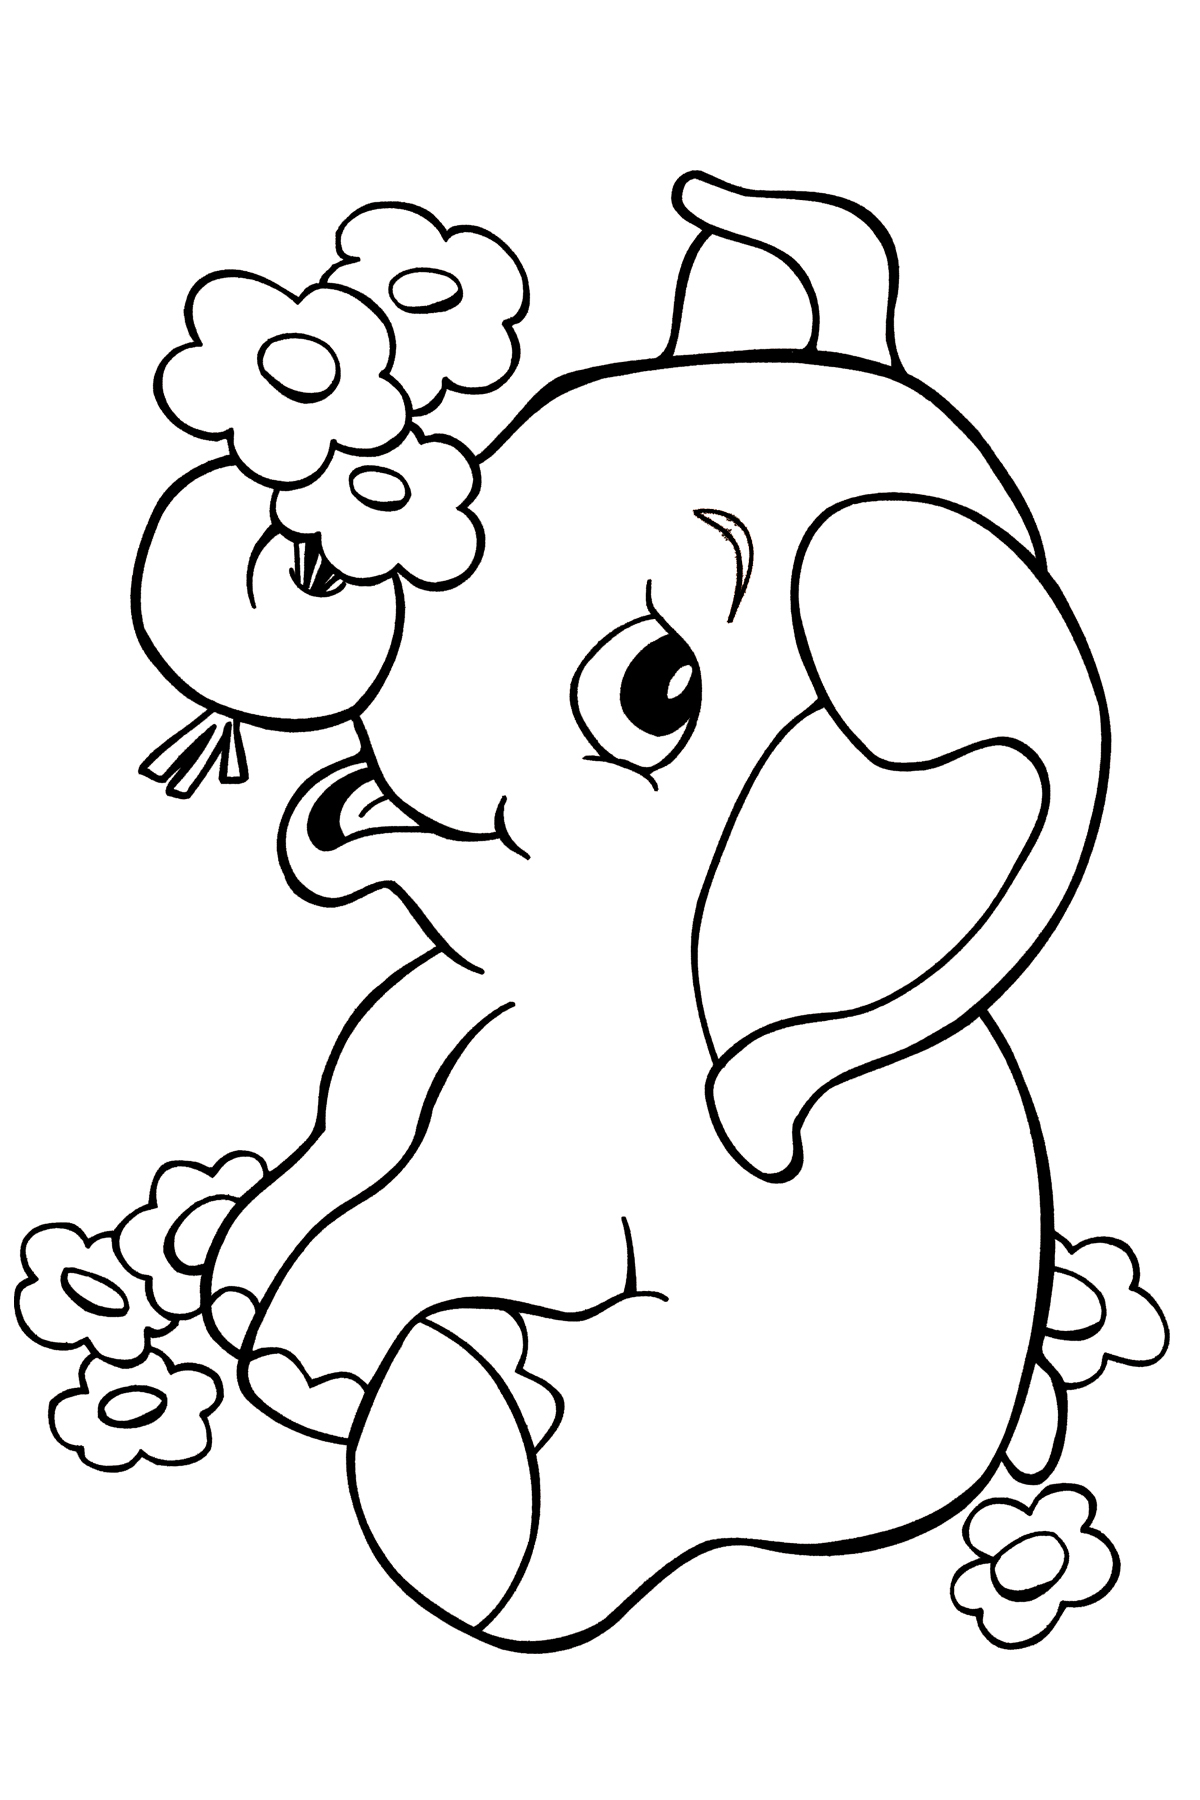 elephant coloring pages free printable elephant coloring pages for kids animal place